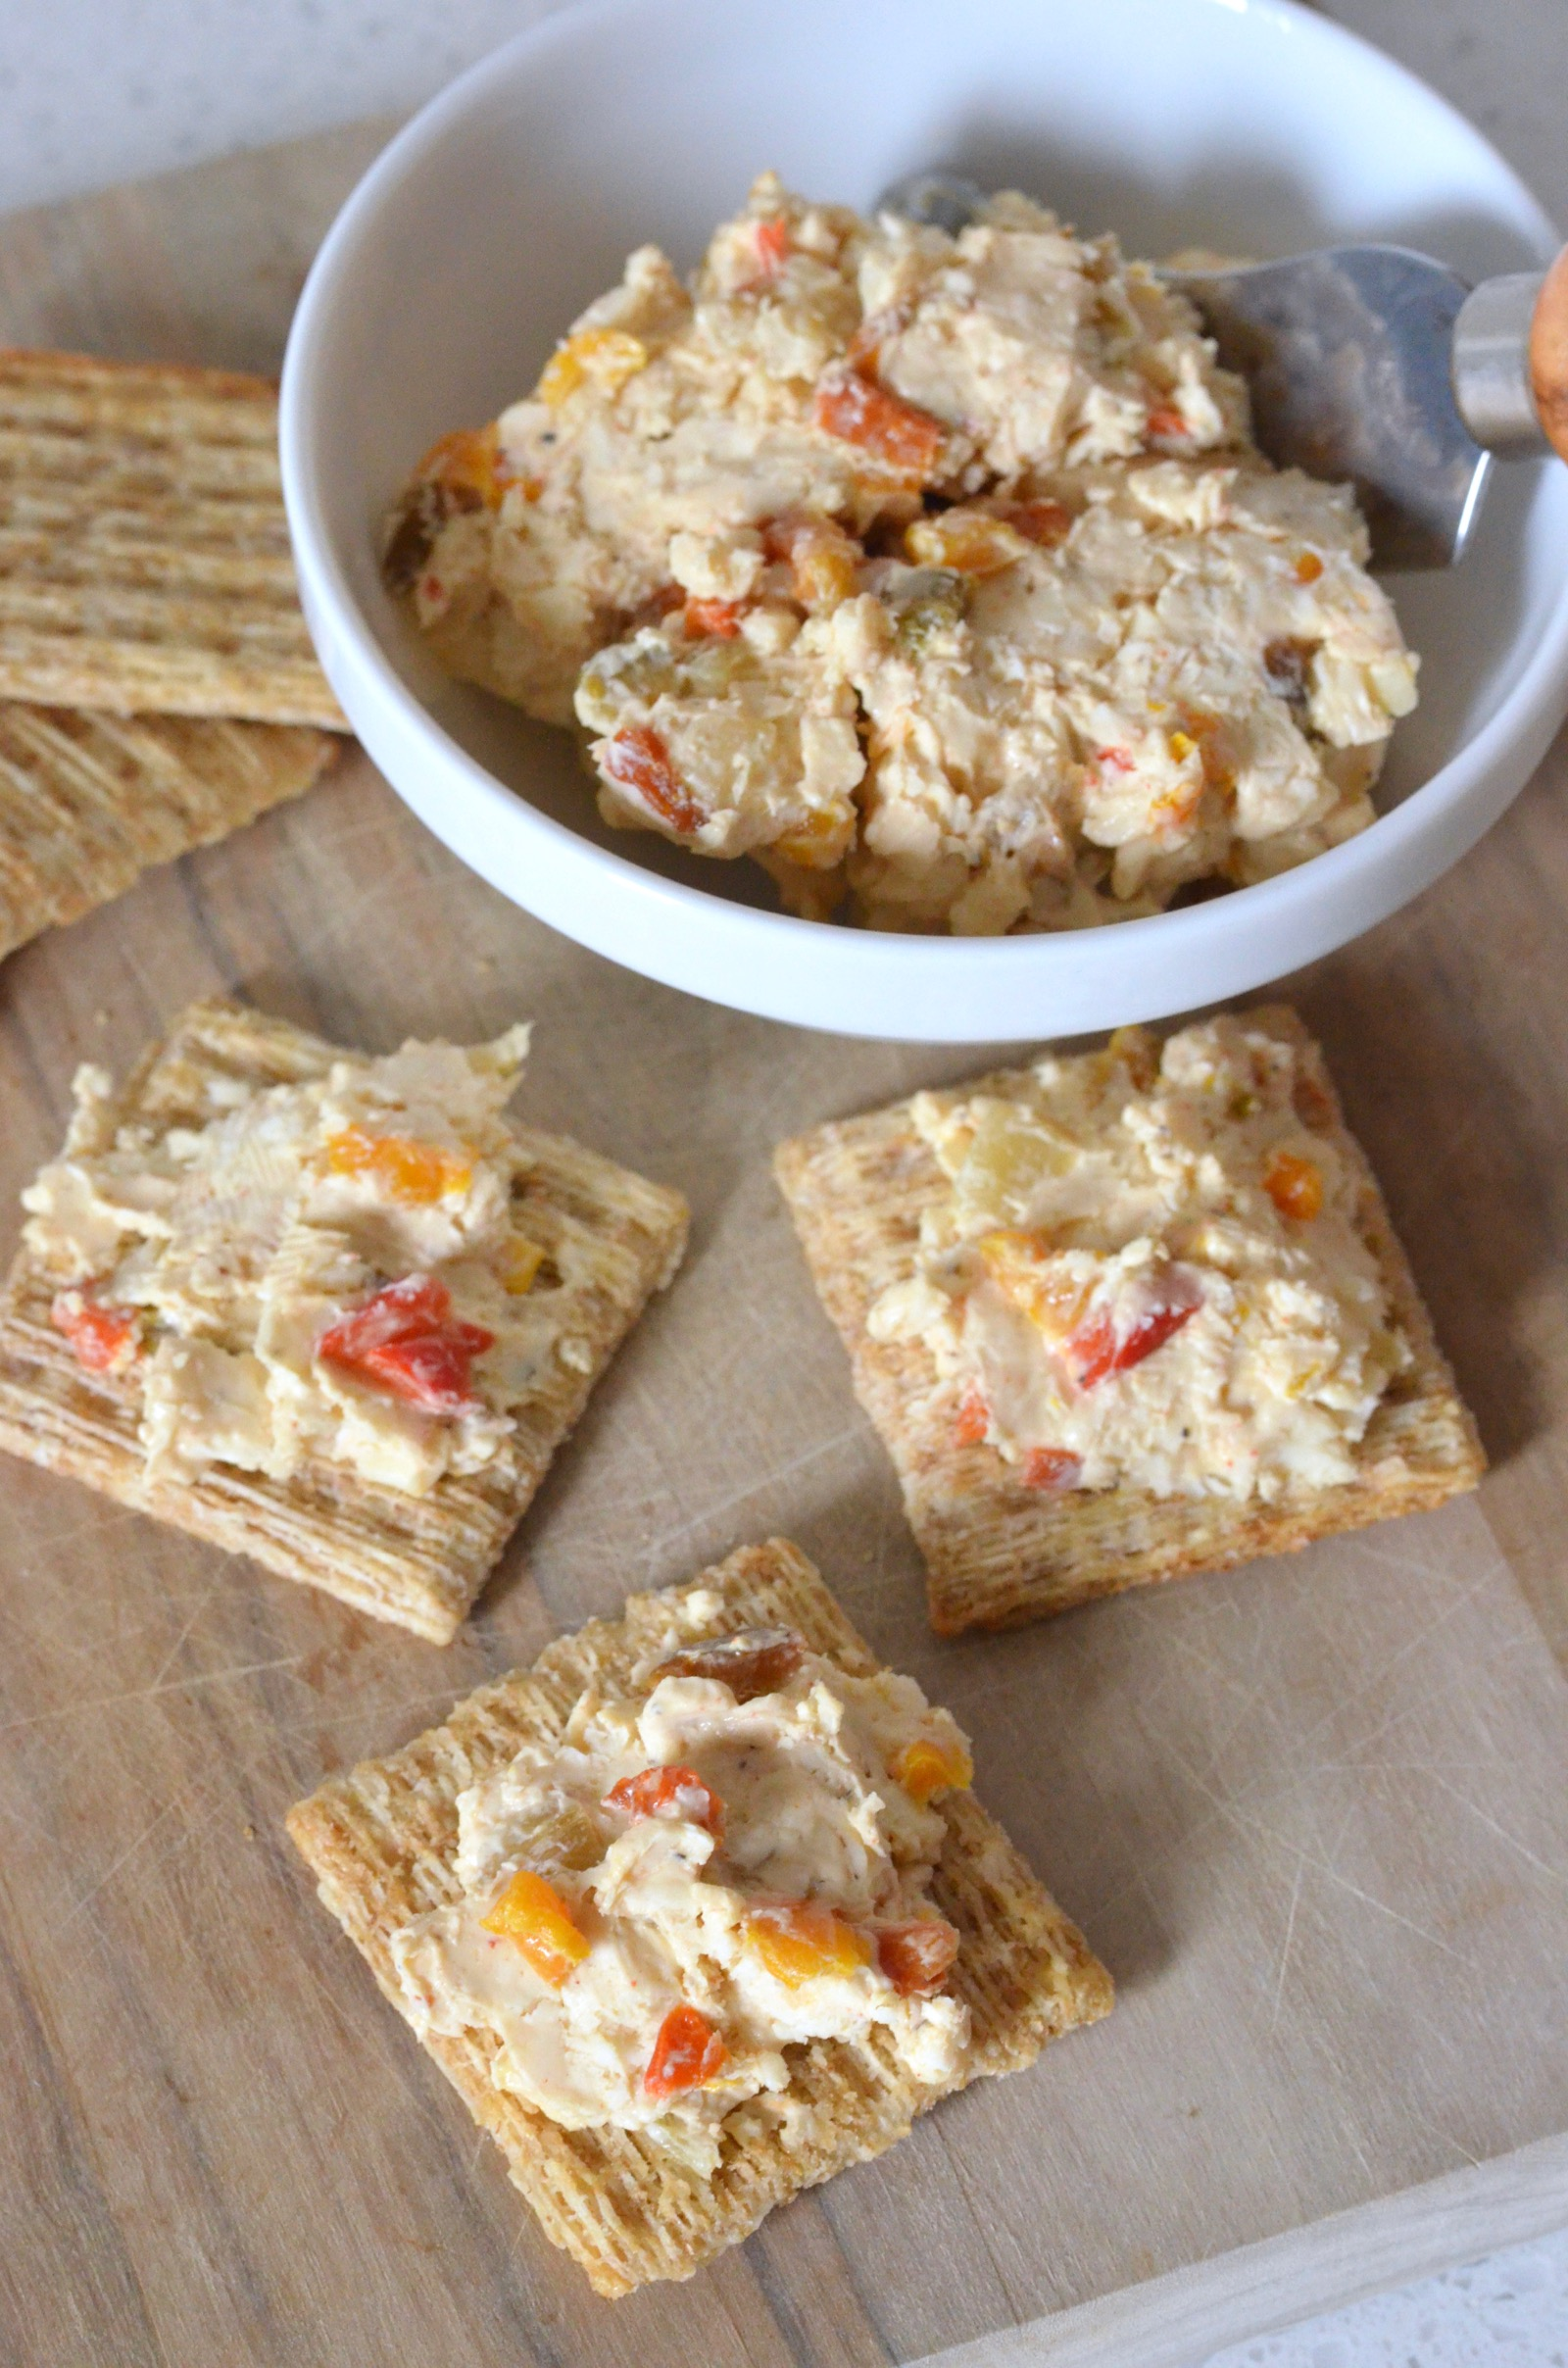 roasted bell peppers in homemade pimento cheese served with crackers